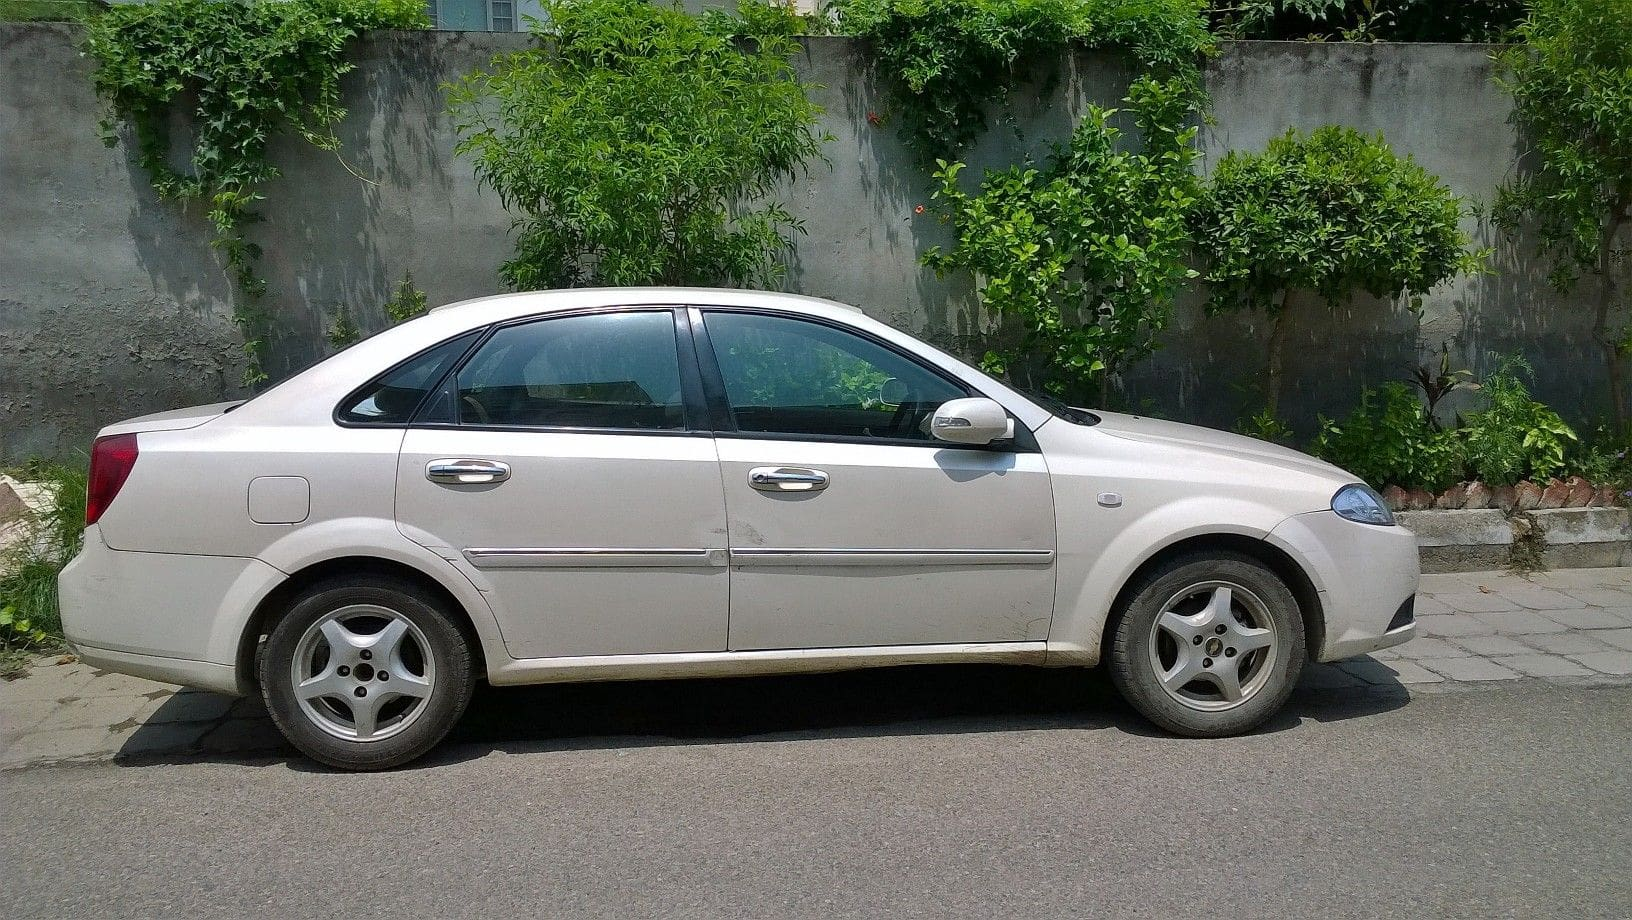 Used Bullet Proof Car For Sale In India